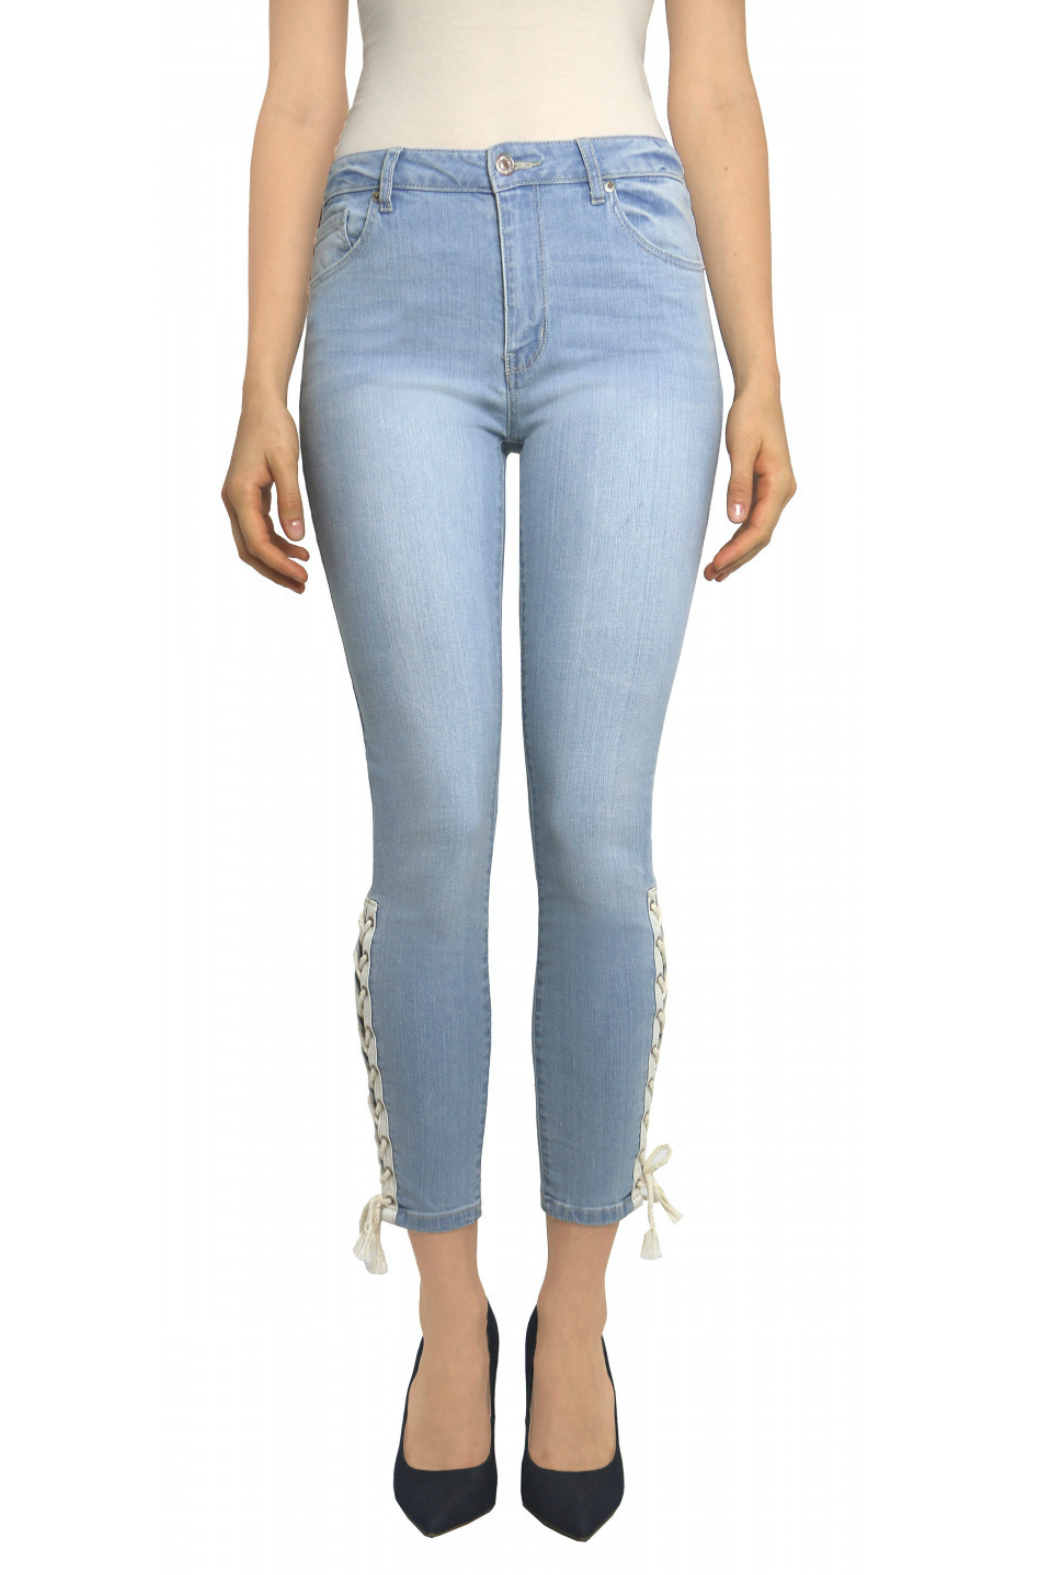 Tractr Ankle Crop Lace Up Hem Jean - Main Image